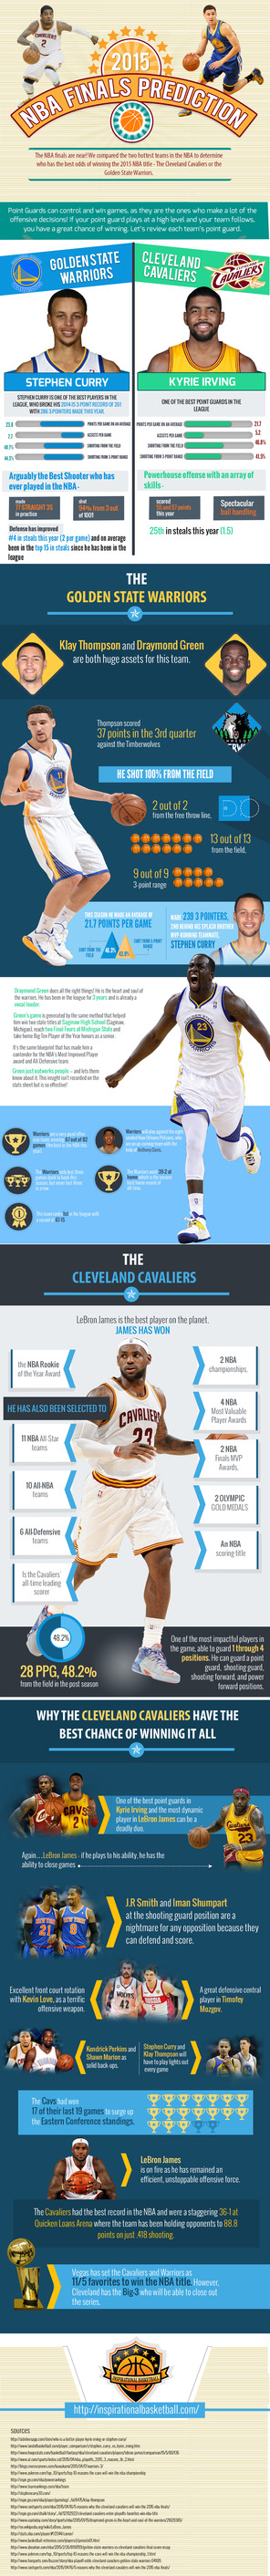 2015 nba finals playoffs predictions infographic